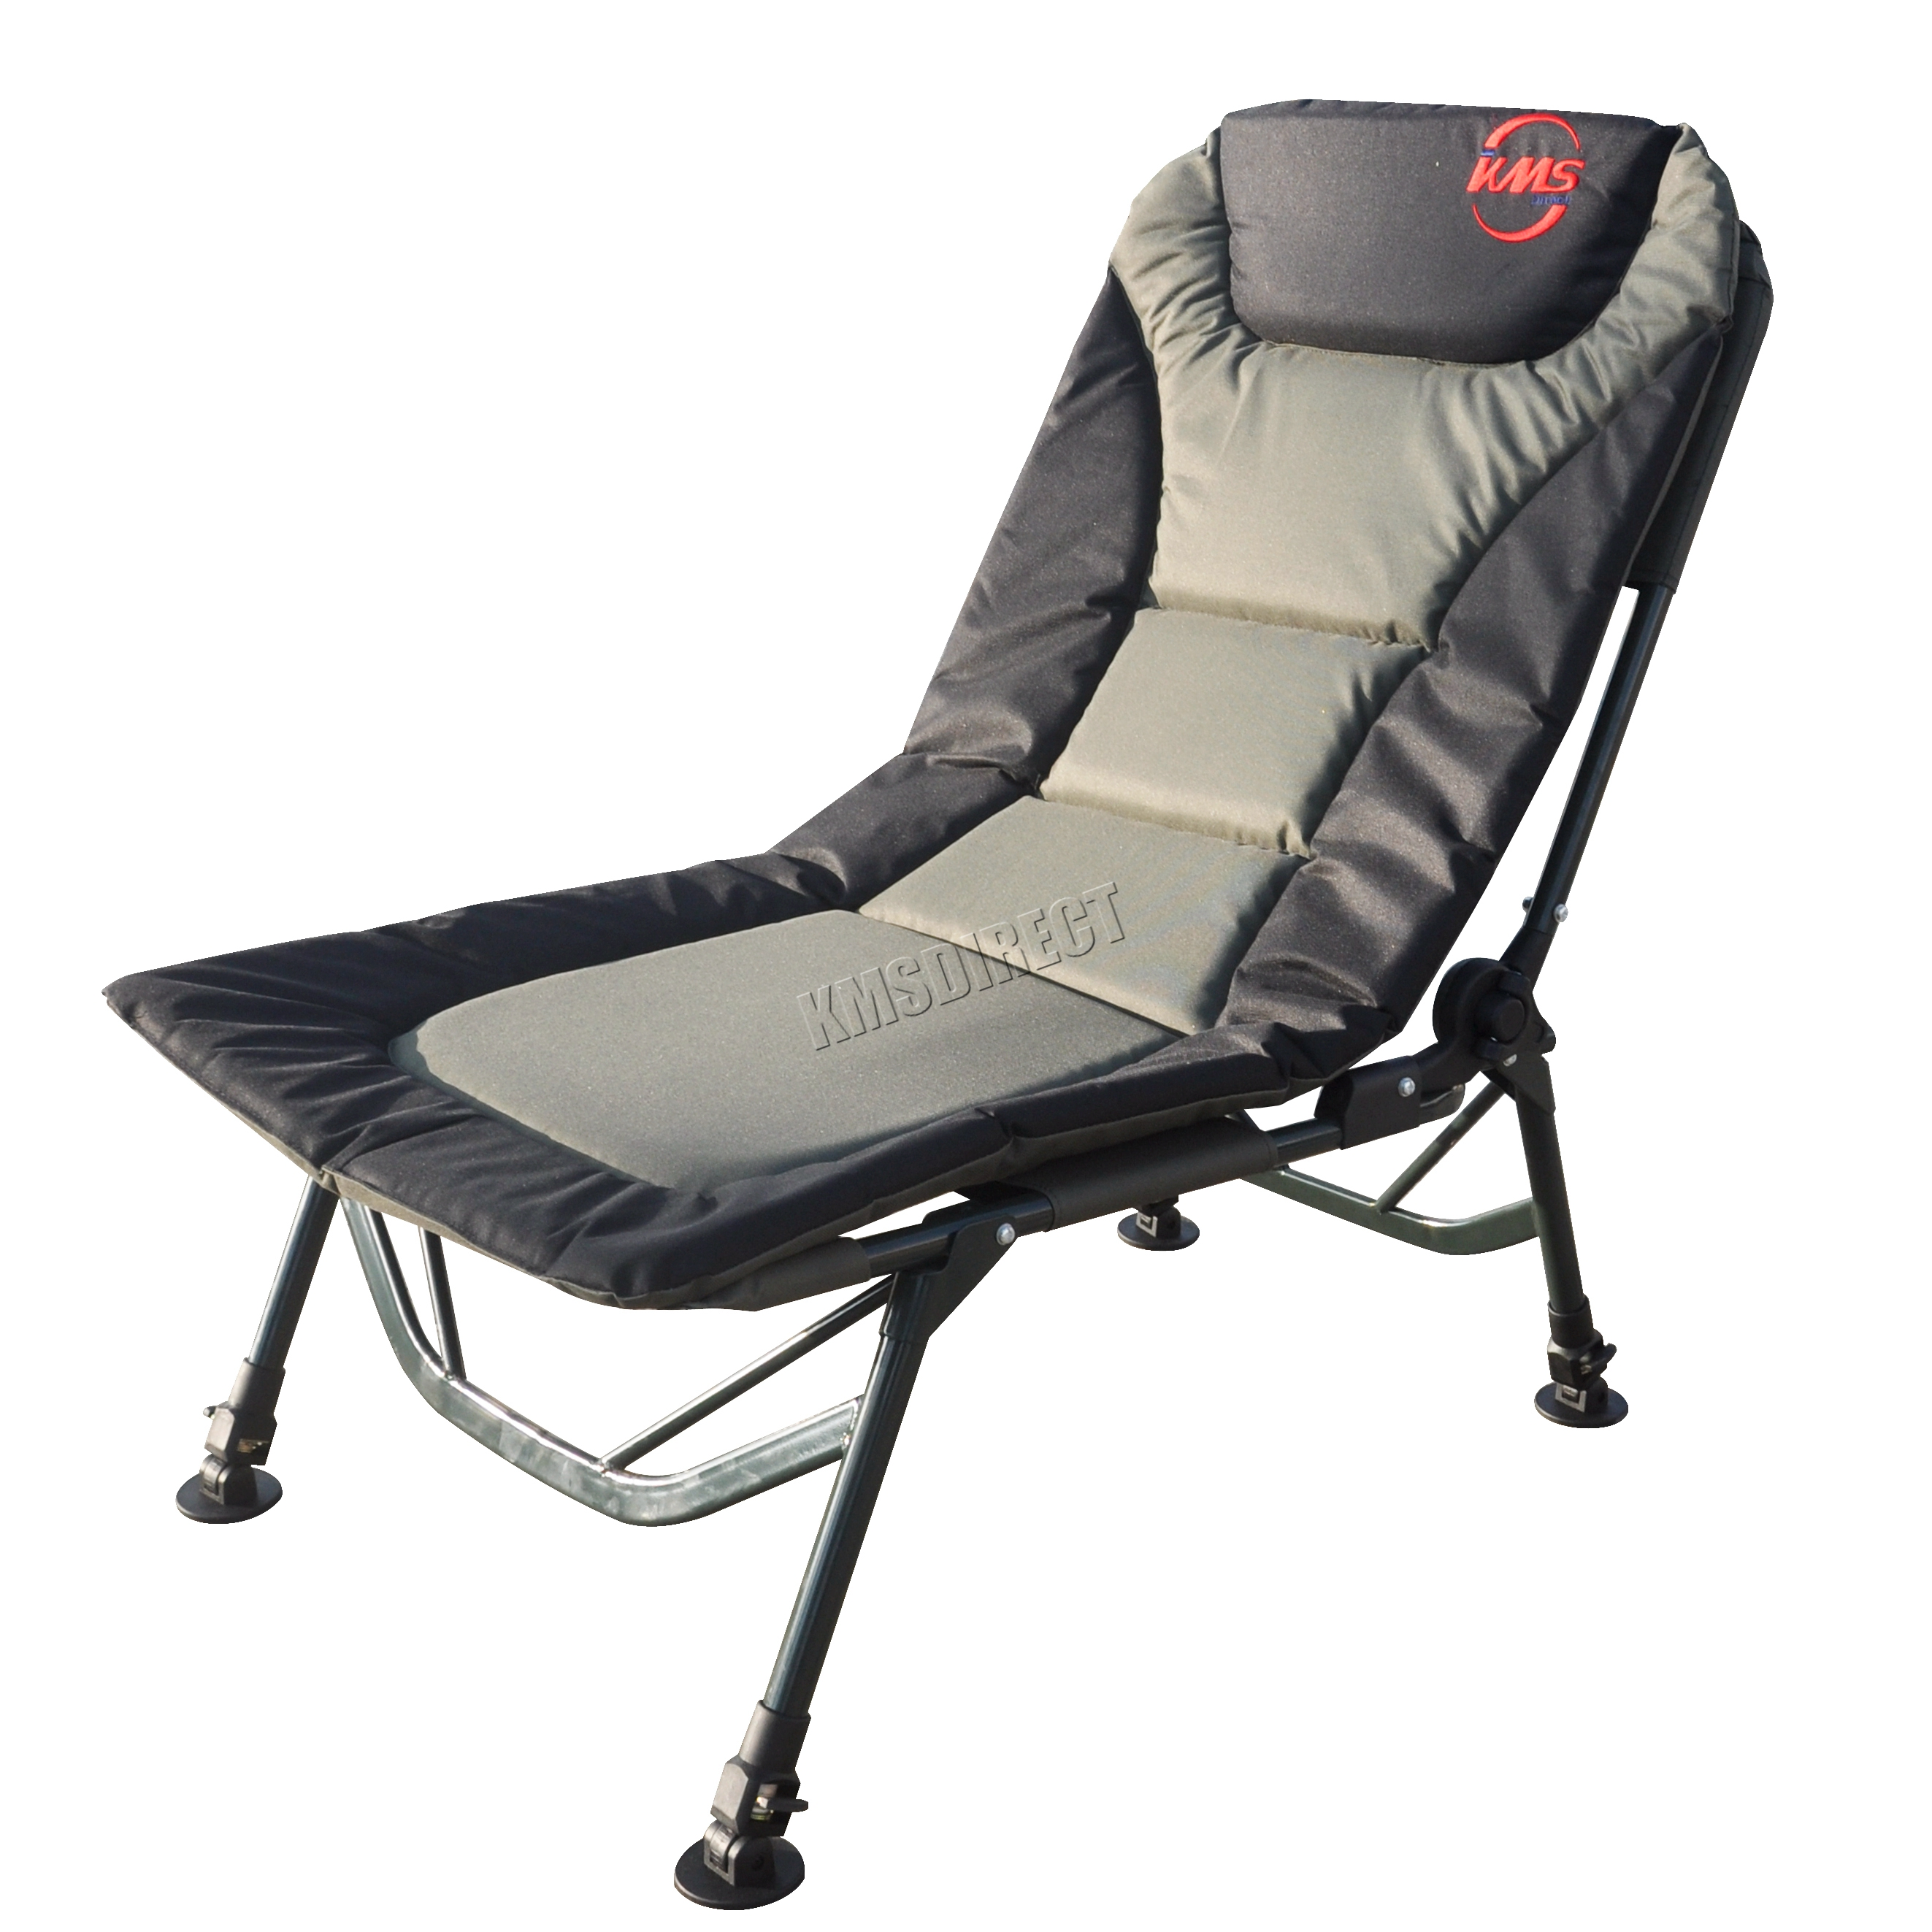 Kms Portable Folding Fishing Chair Xl Camping Chair 4 Adjustable Legs 5055418313643 Ebay